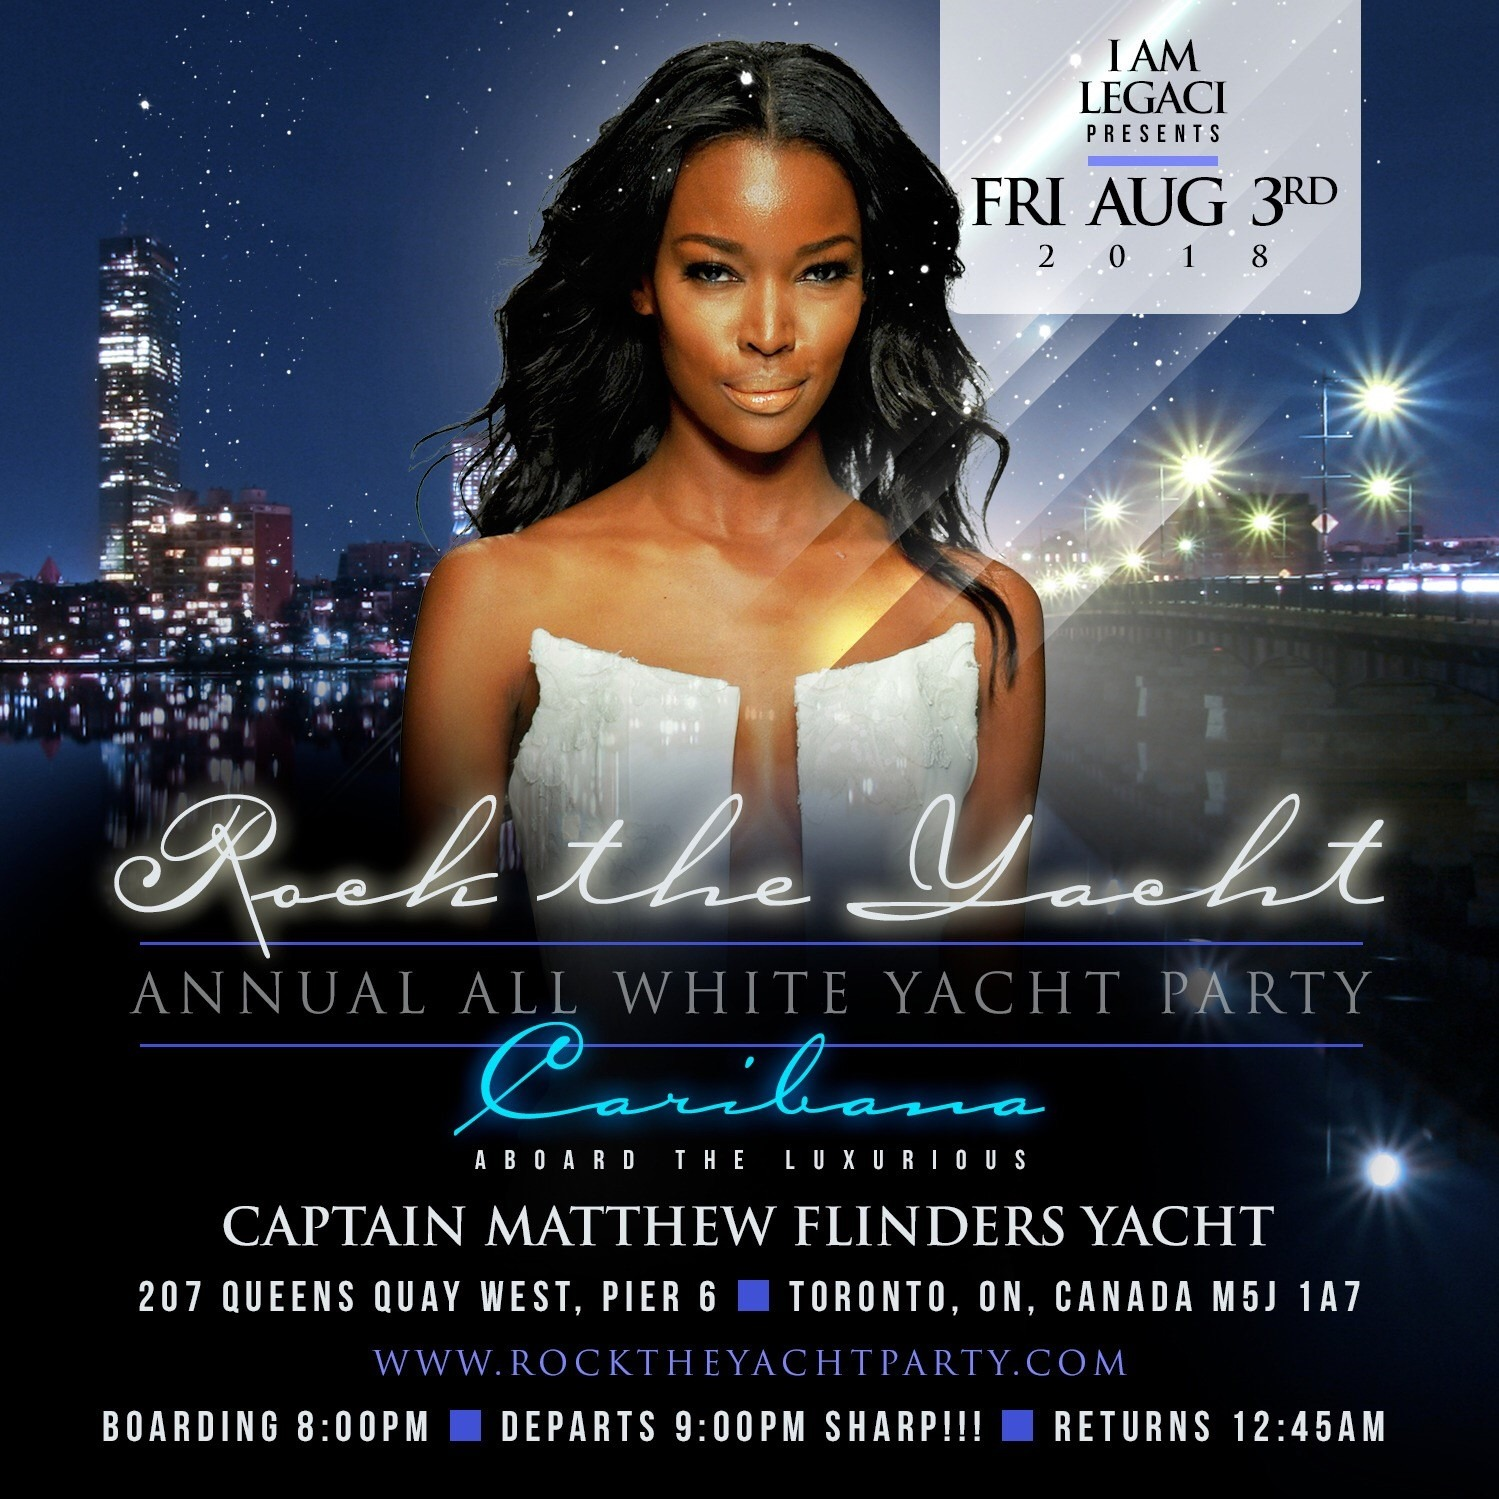 ROCK THE YACHT THE 6th ANNUAL ALL WHITE YACHT PARTY TORONTO CARIBANA 2018